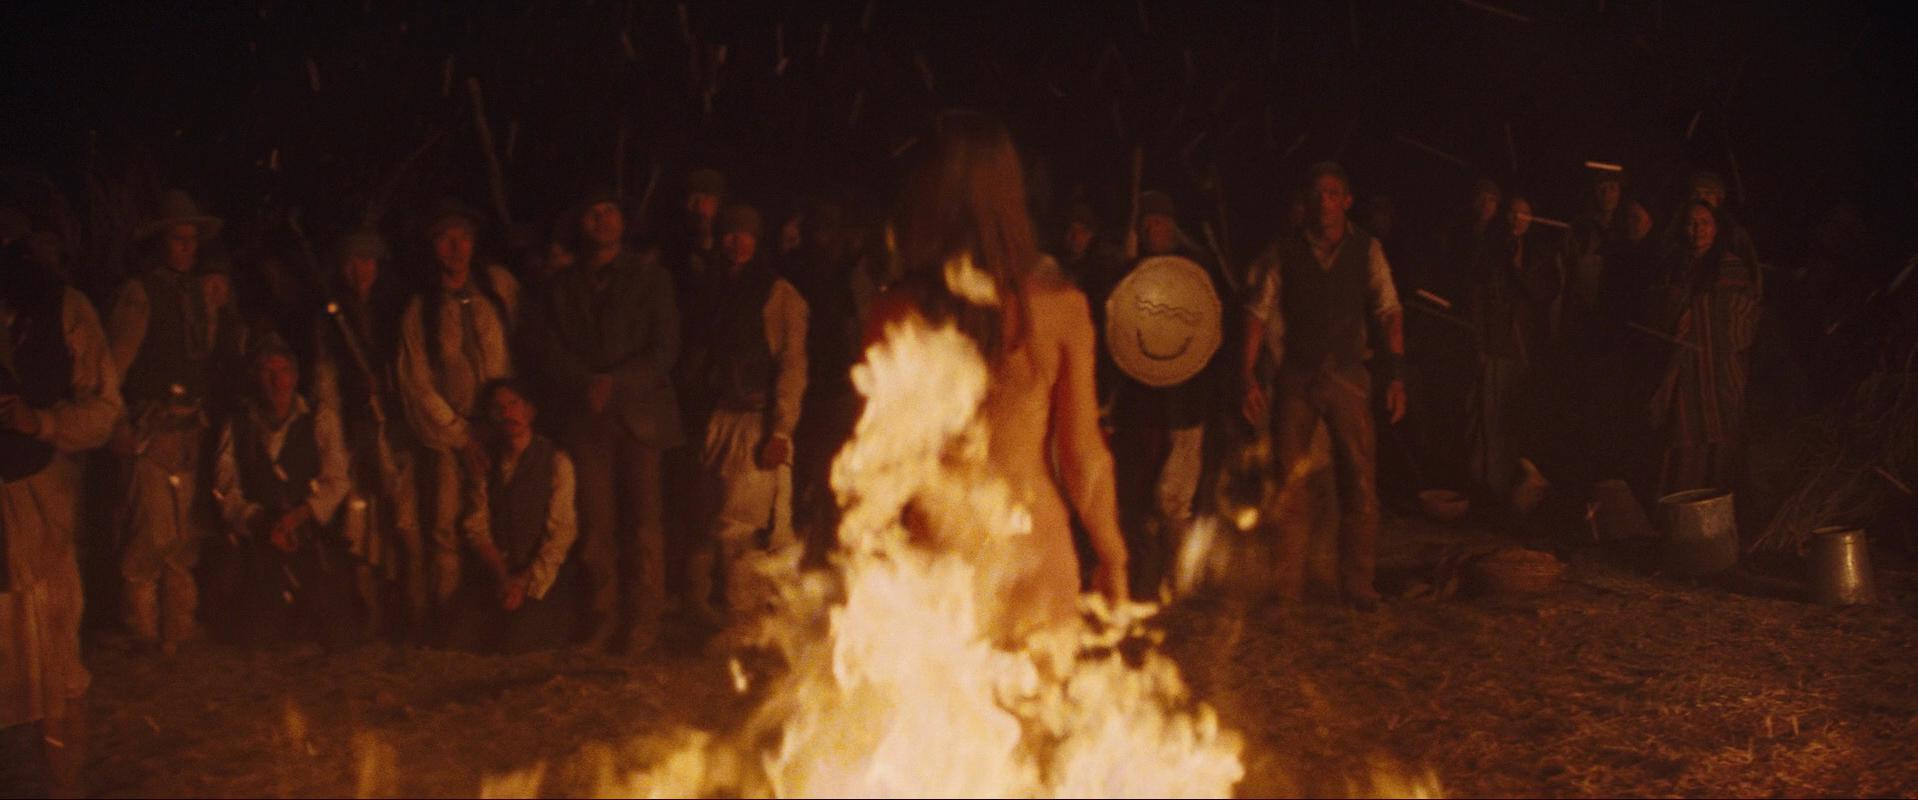 Olivia Wilde nude - Cowboys and Aliens (2011)